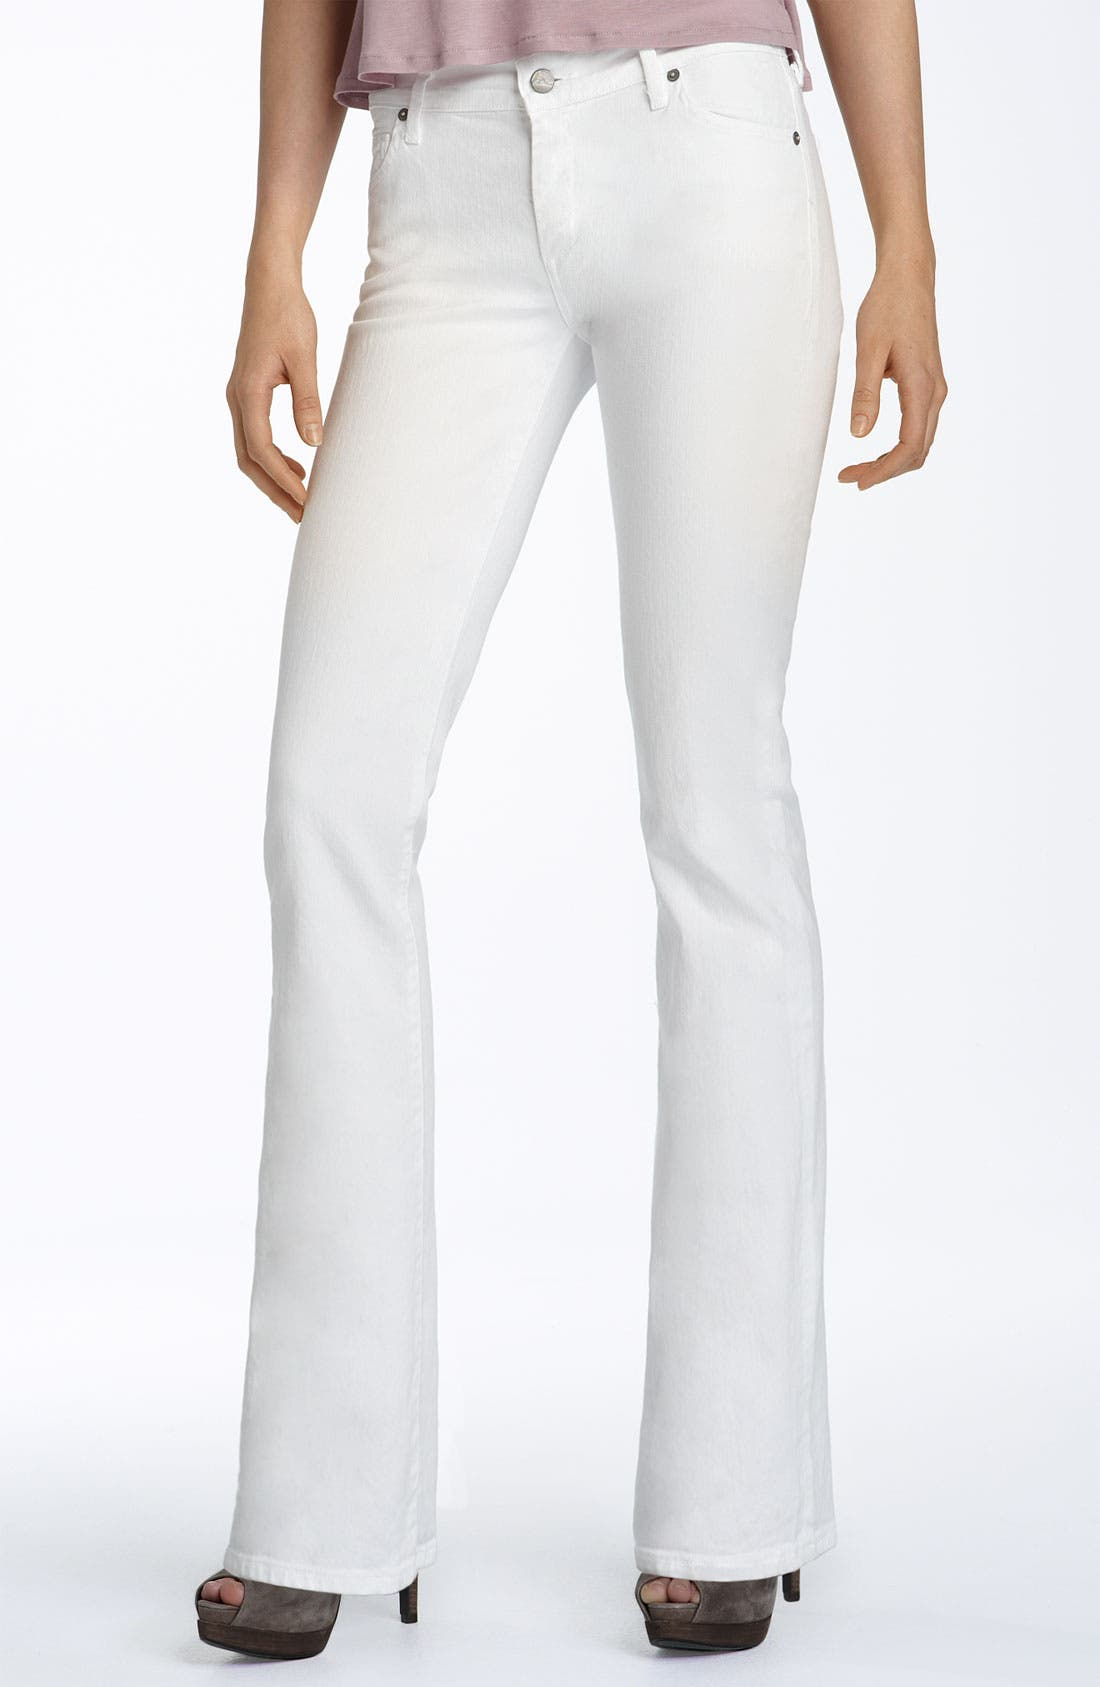 CITIZENS OF HUMANITY, 'Amber' Mid Rise Bootcut Stretch Jeans, Alternate thumbnail 2, color, 100